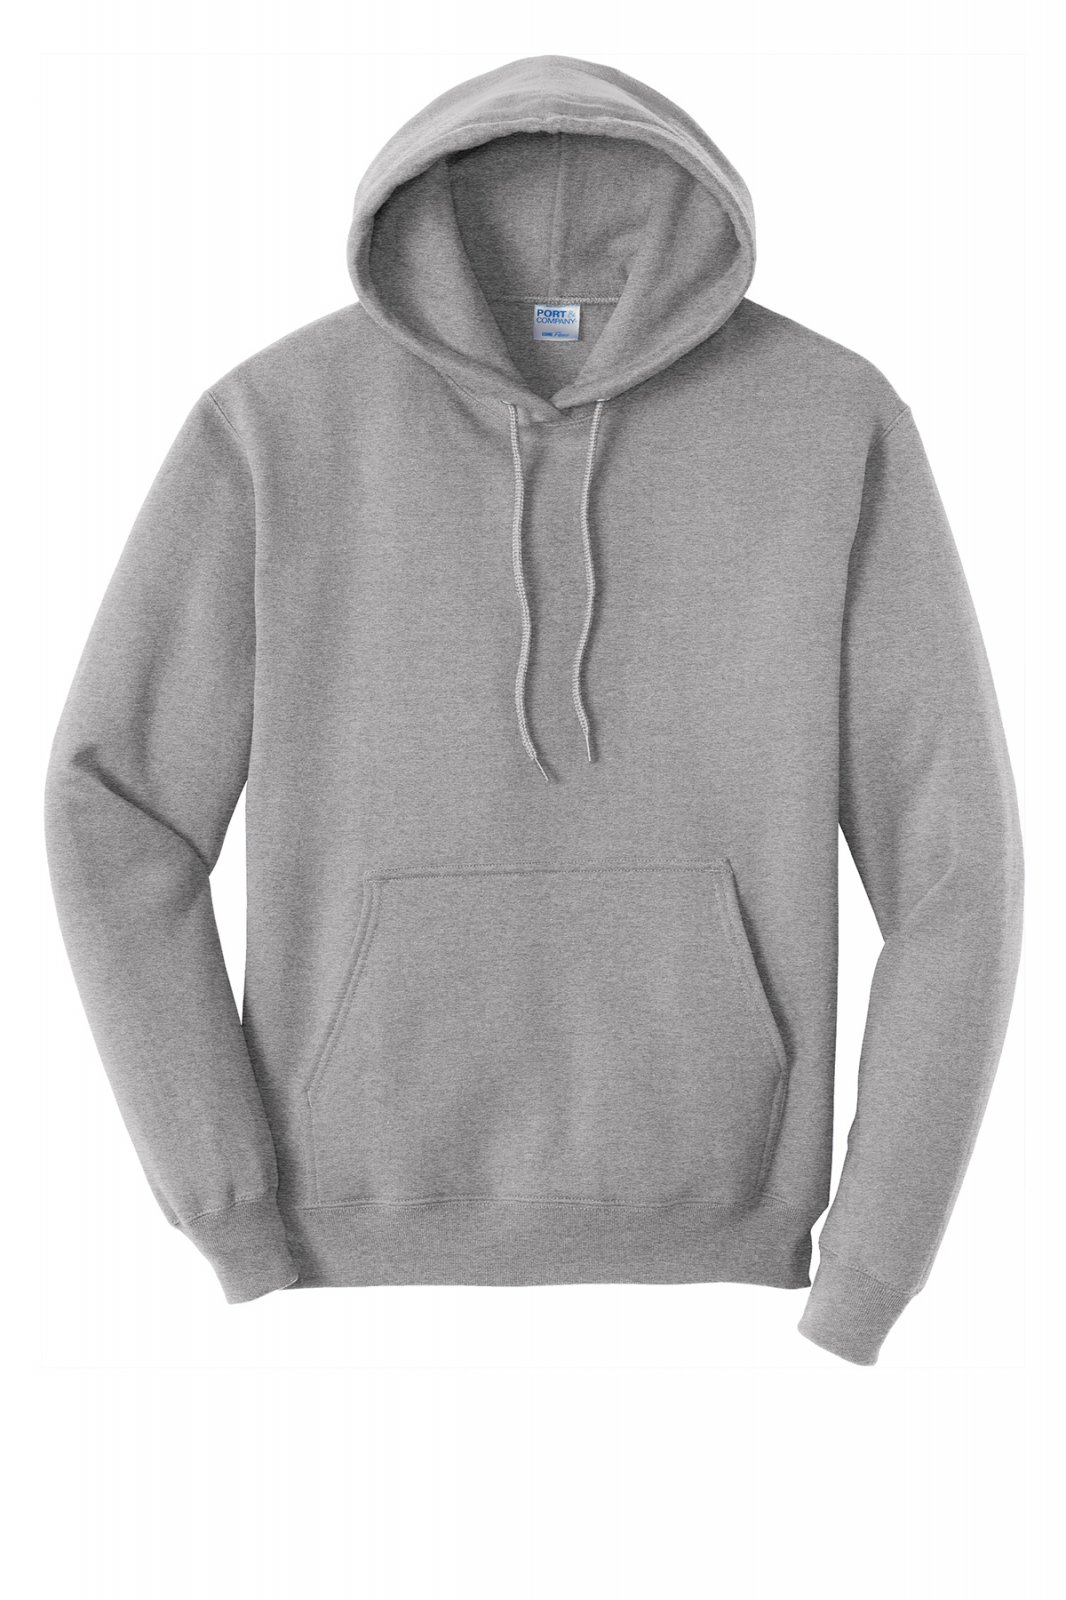 PC78H Port & Company Core Fleece Pullover Hooded Sweatshirt